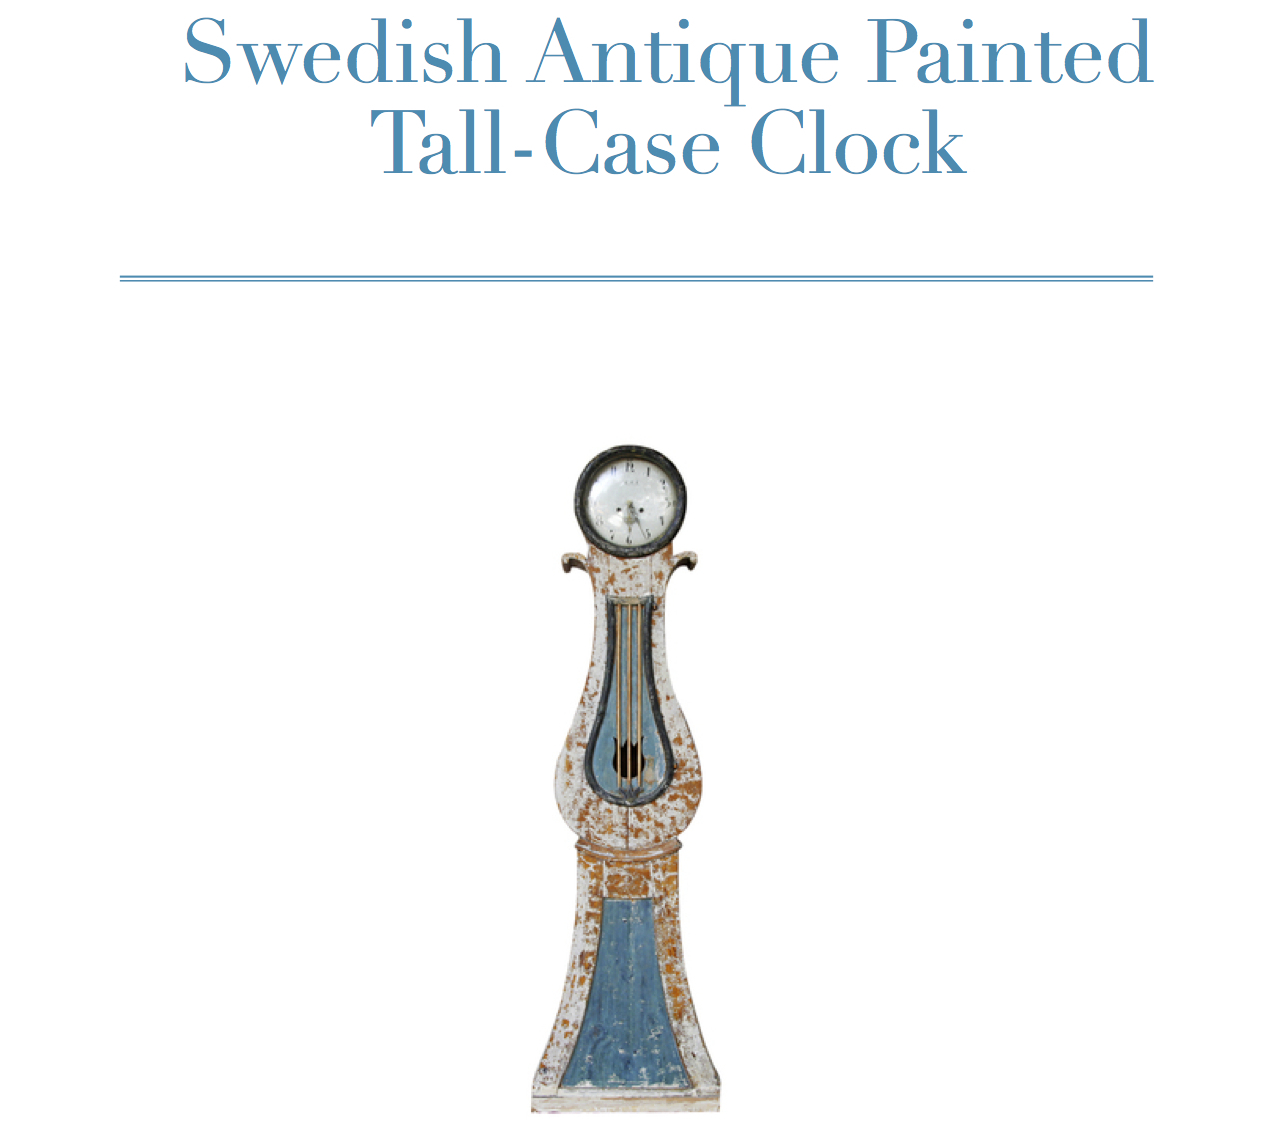 Th High Boy - Swedish Antique Painted Tall-Case Clock